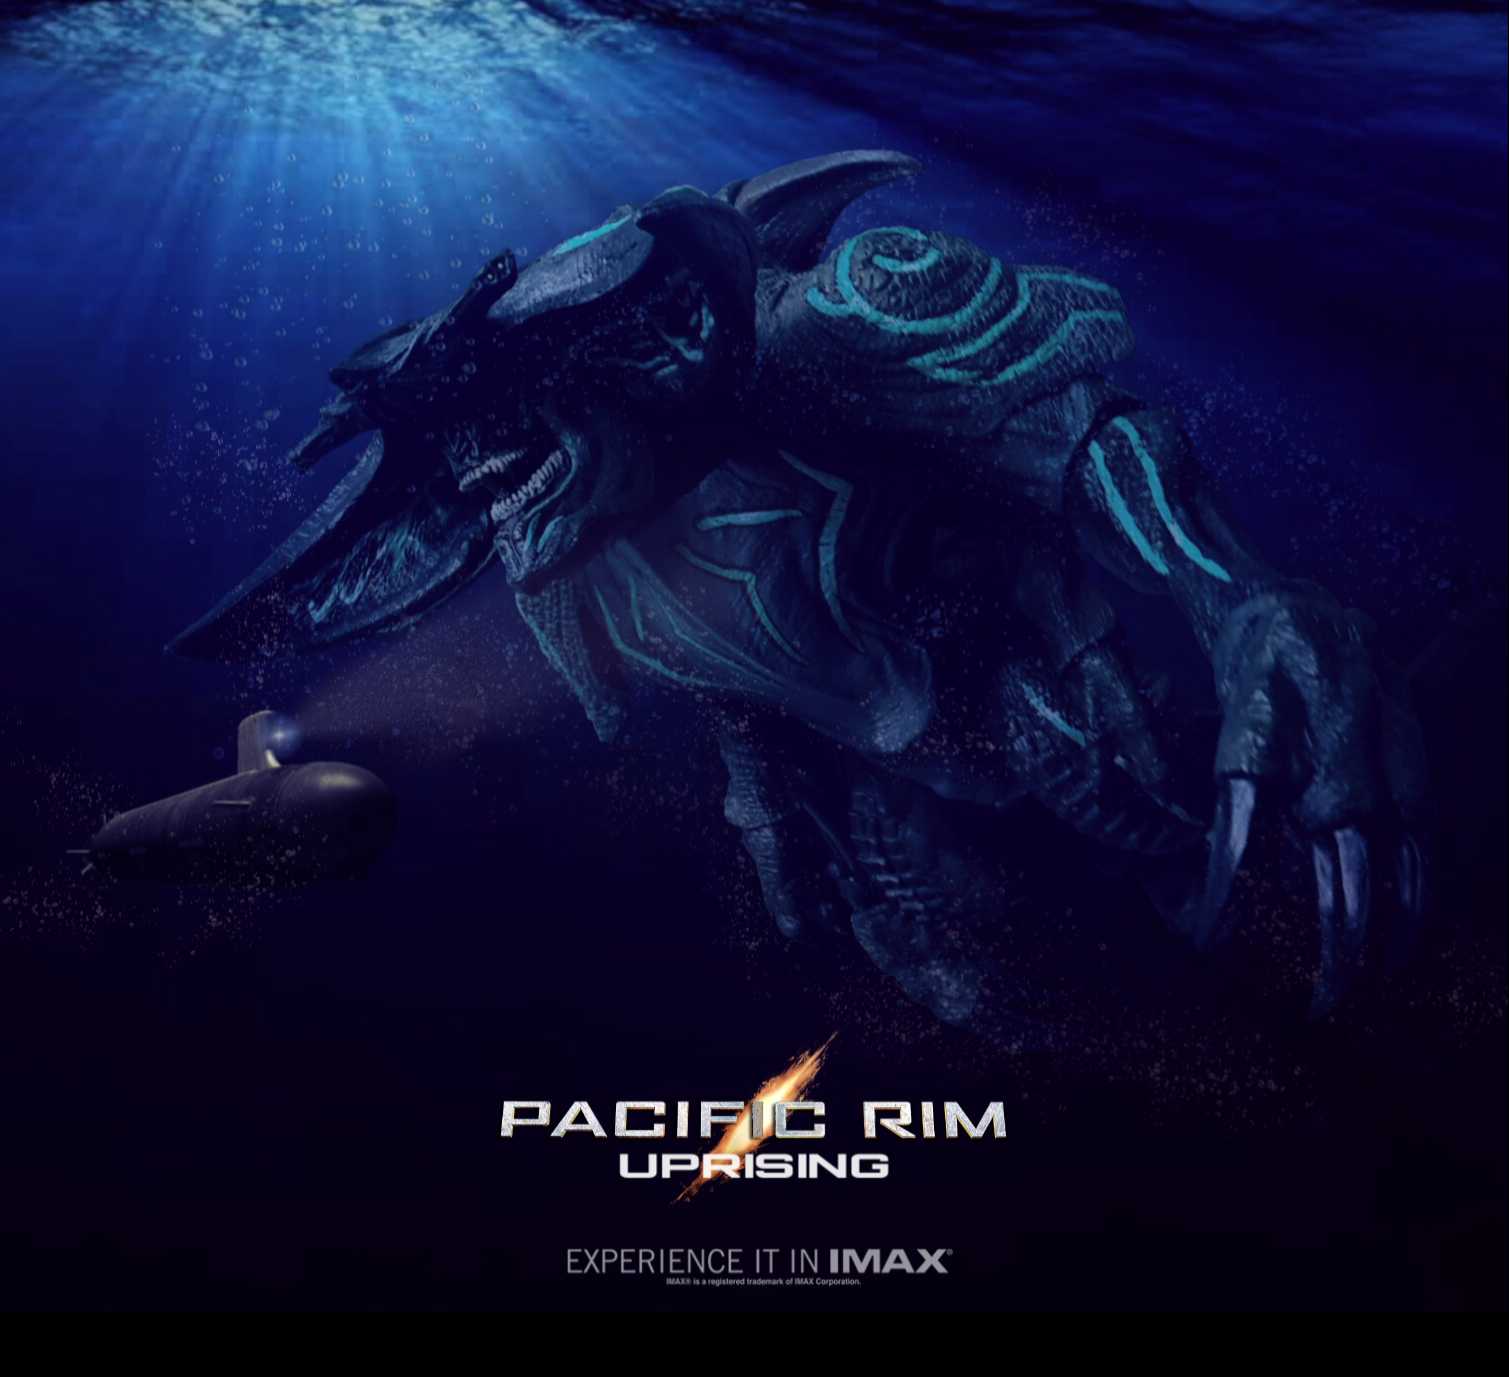 Godzilla 2 Imax Poster Textless: PACIFIC RIM UPRISING. IMAX Poster By Pacific Shatterdome